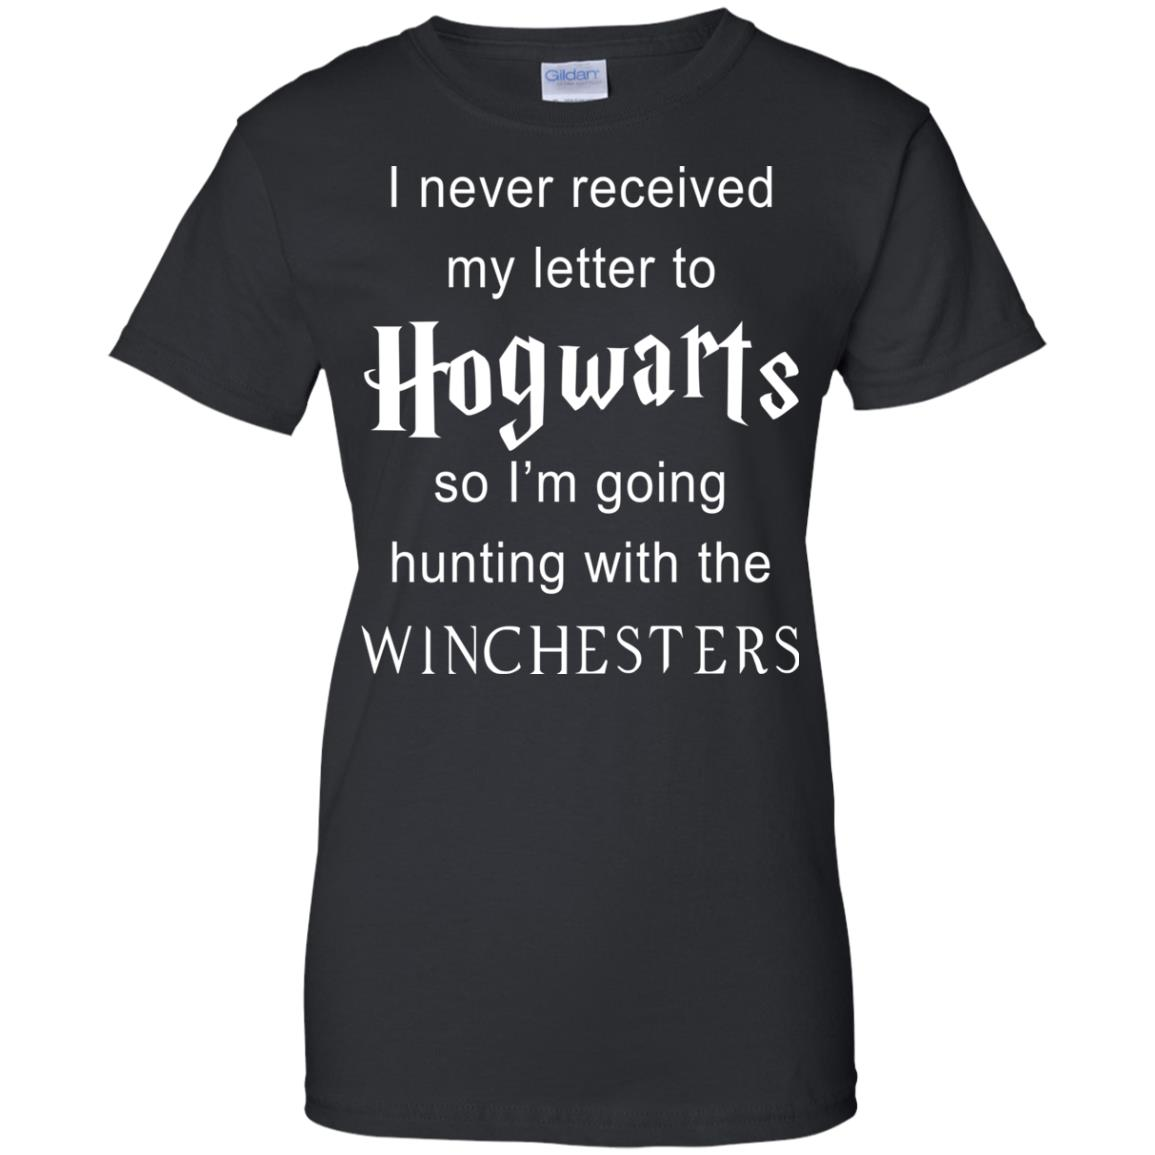 image 1950 - I never received my letter to Hogwarts shirt, hoodie, long sleeve